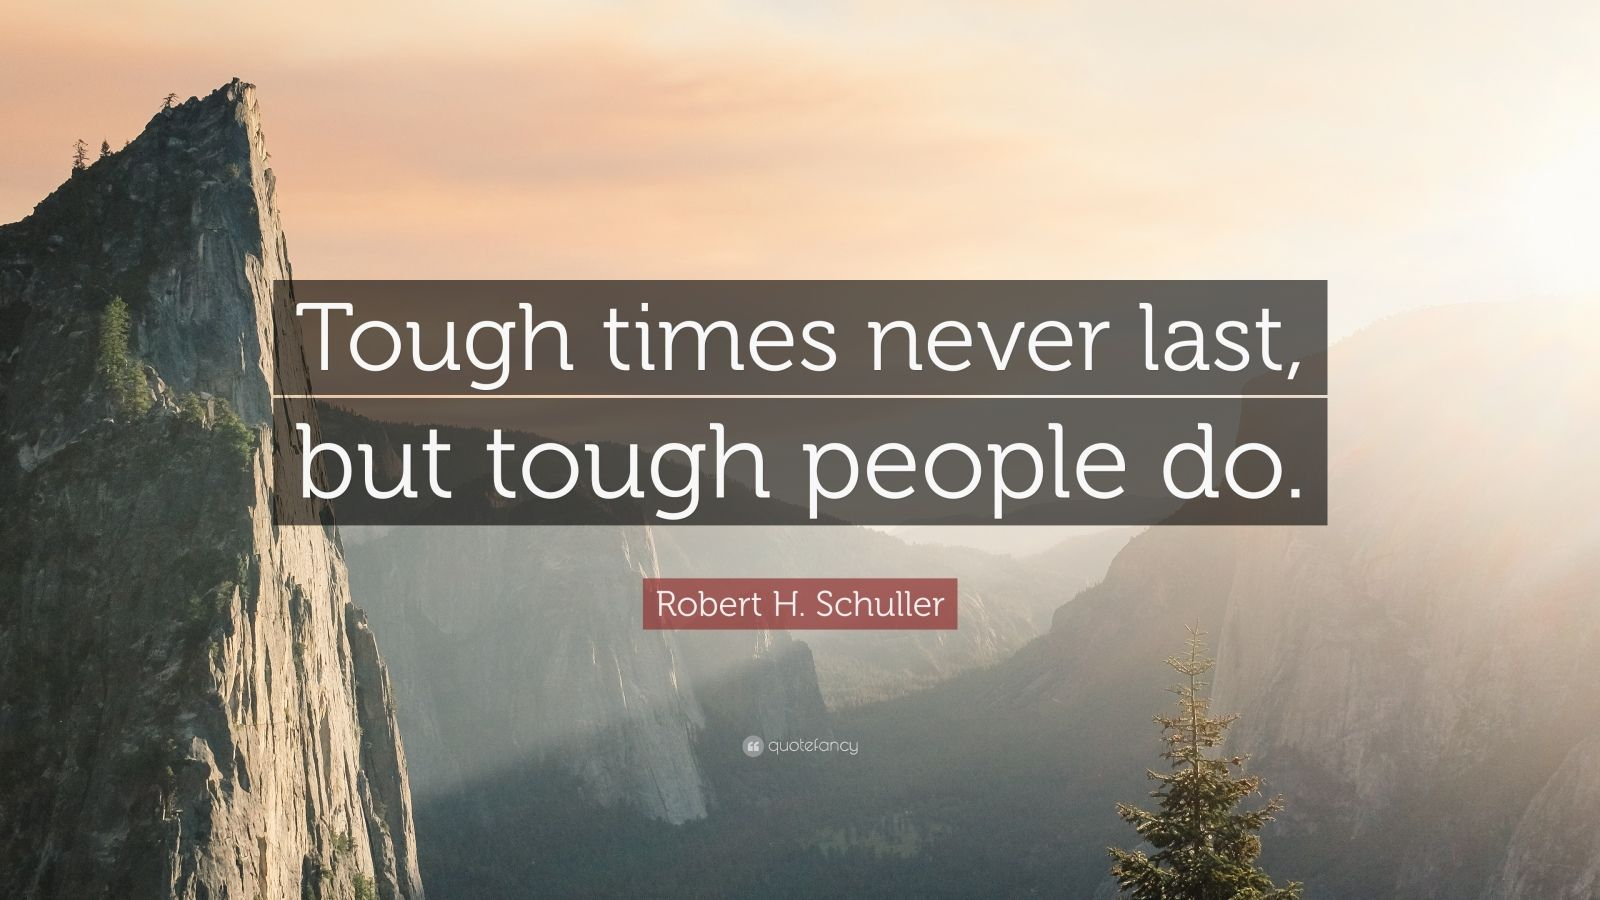 an essay on tough time never last but tough people do I'm writing some personal essays about my identity and it's so much fun best supplemental essays for college nutrition research essays nmsu admissions essay gerlind pracht dissertation.